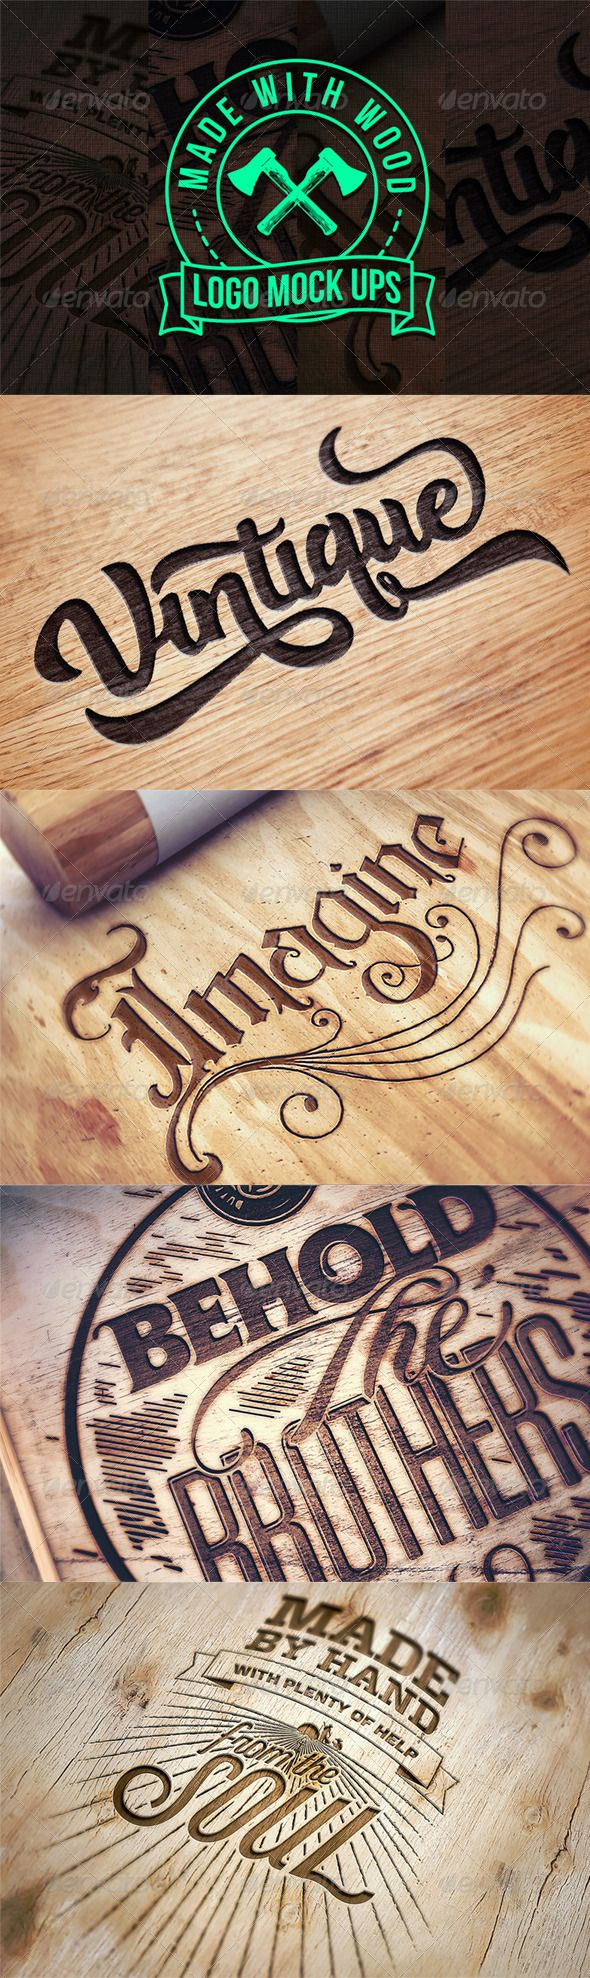 Engraved Wood Logo Mock Ups Download here: https://graphicriver.net/item/engraved-wood-logo-mock-ups/7646728?ref=KlitVogli